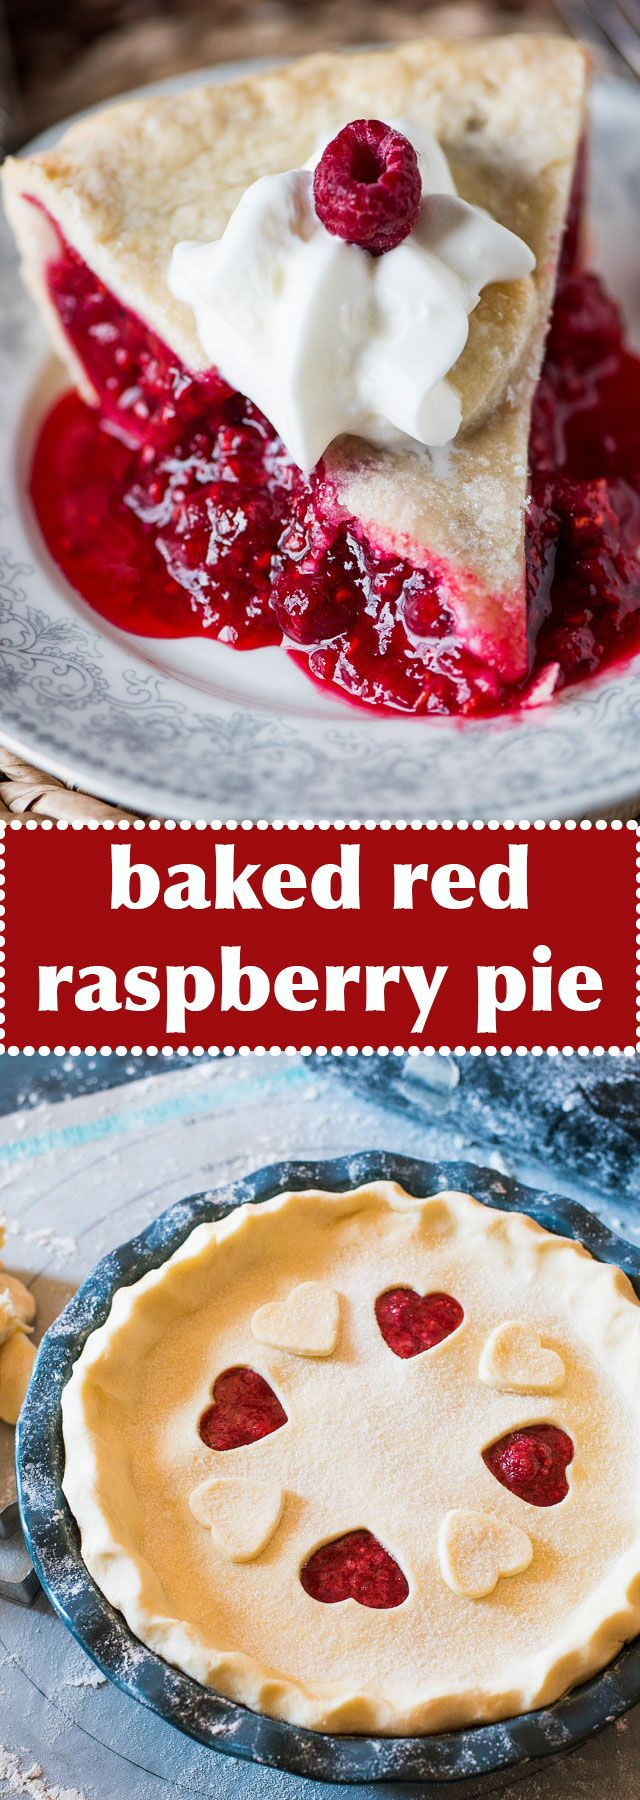 Use fresh or frozen red raspberries in this Amish-style baked raspberry pie. The tangy red filling takes just minutes to mix together.